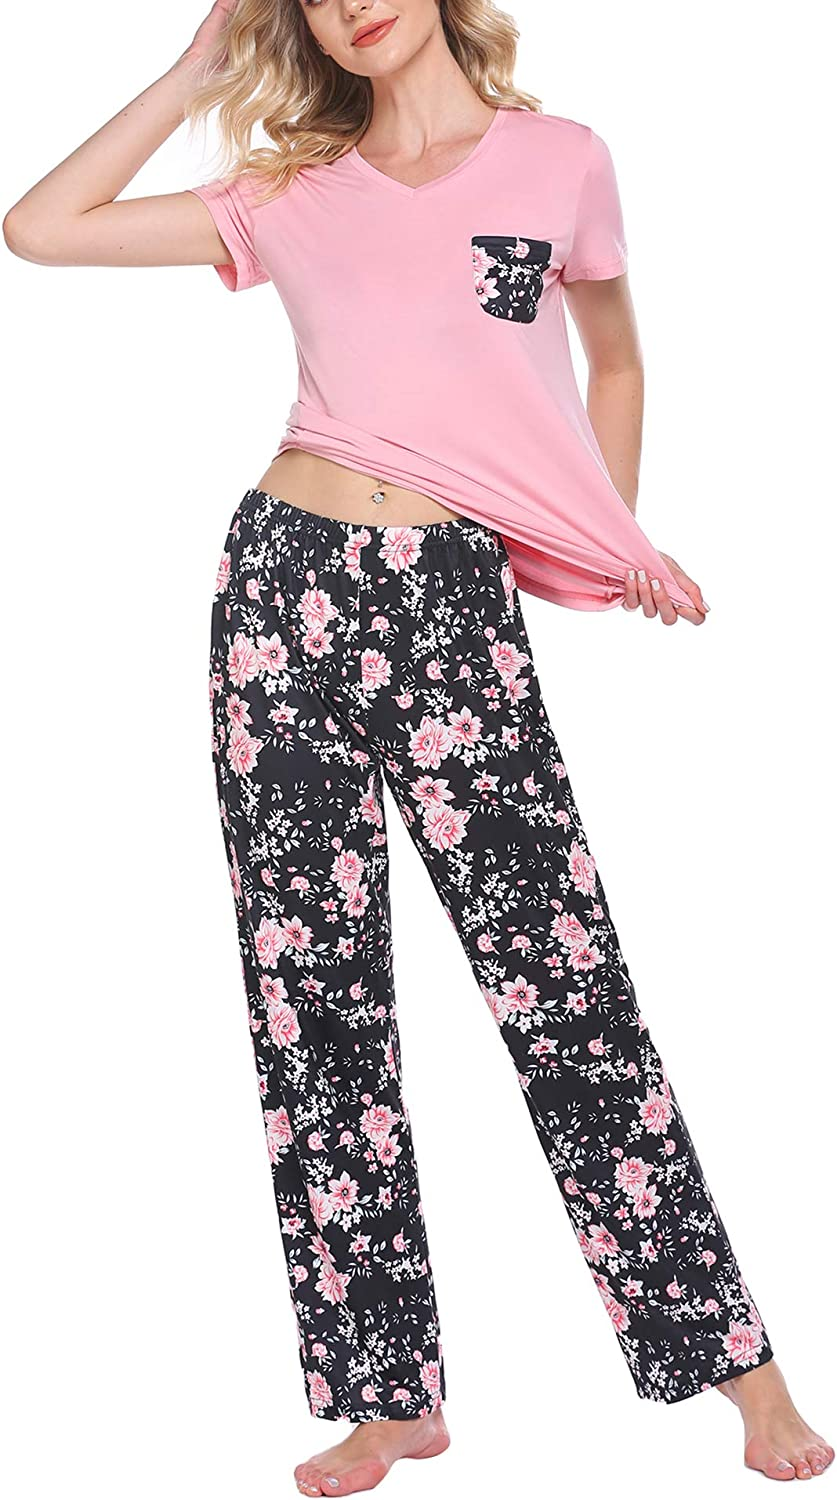 HOTOUCH Women's Pajama Set Short and Max 61% OFF Two-Piece Long Pants Sleeve Cheap mail order shopping